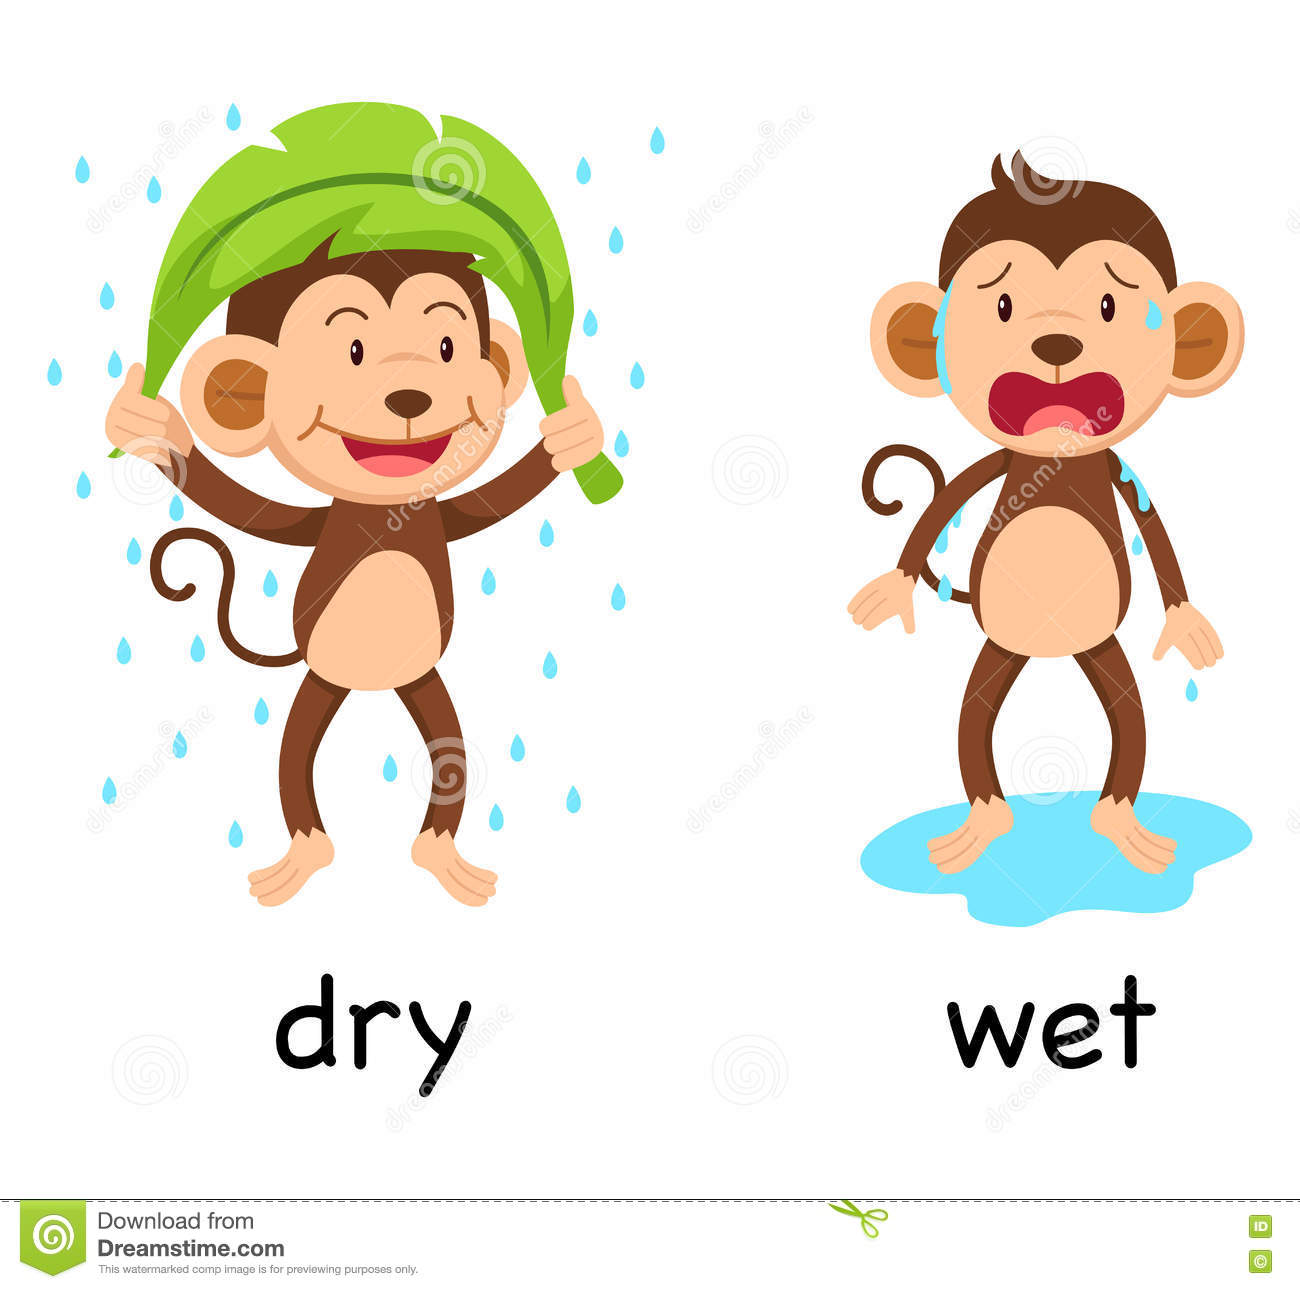 Wet and dry clipart.